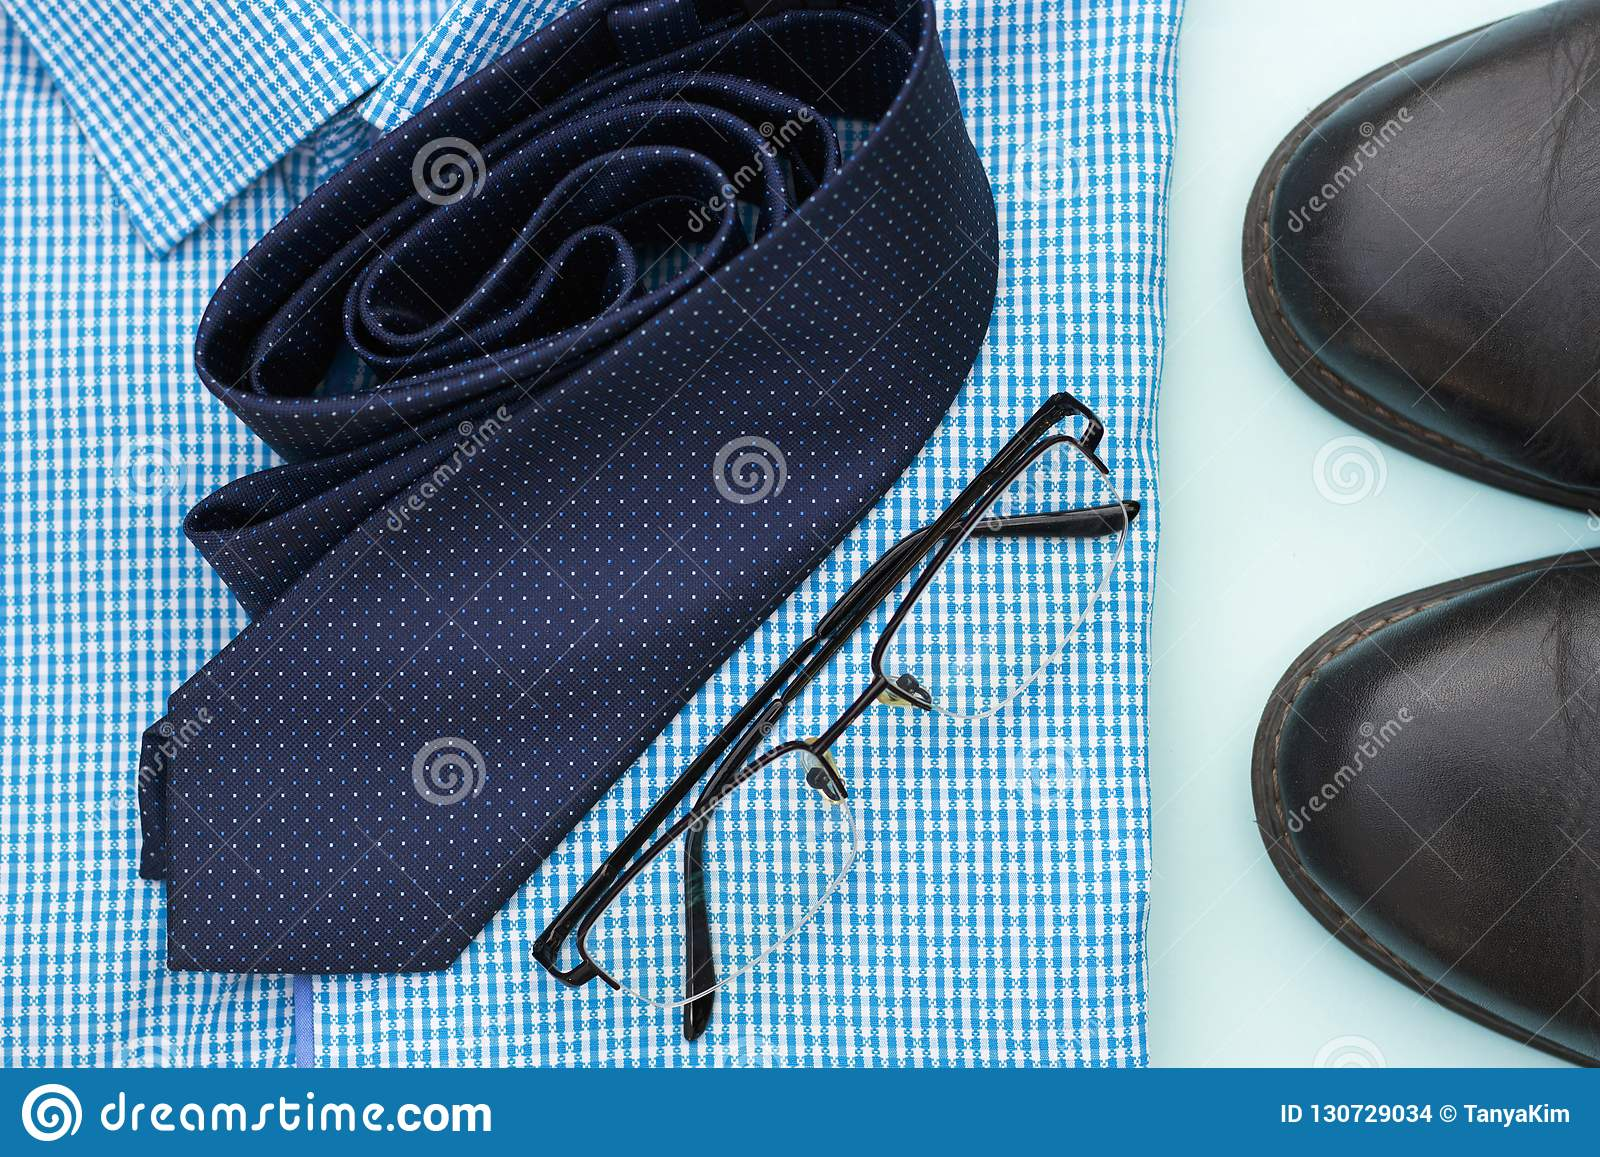 61c743f87255c Set of clothes and accessories for man on blue background, business or  office concept.